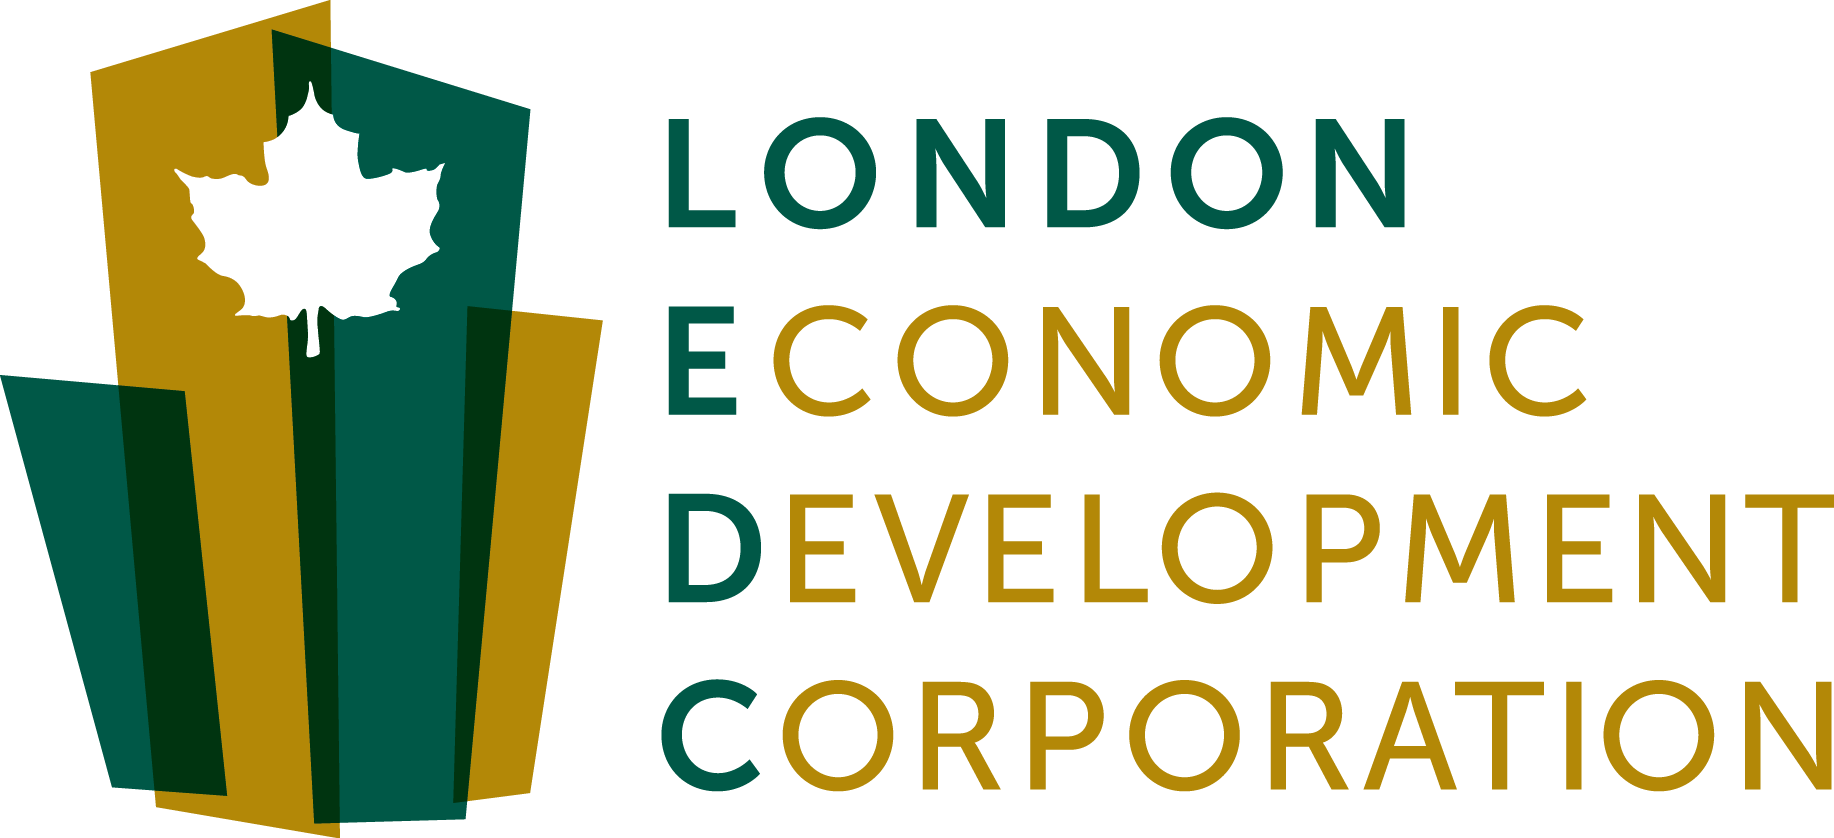 LEDC_logo_2colour_HighRes (002).png